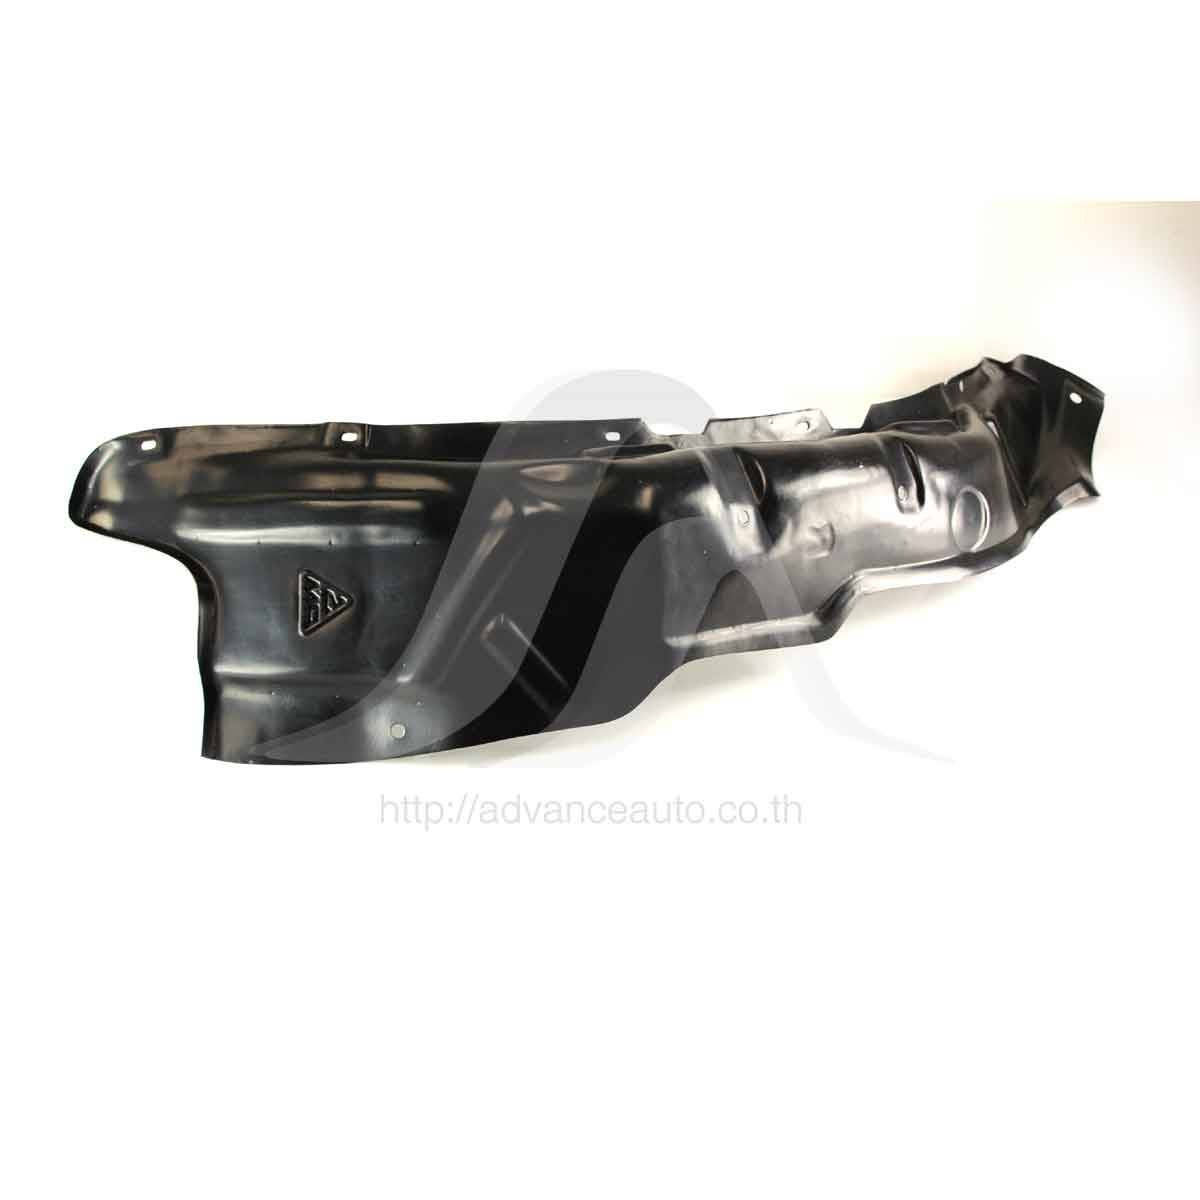 Plastic inner fender Toyota Hilux LN90 RR 65637-89102-4 auto body aftermarket spare parts and car